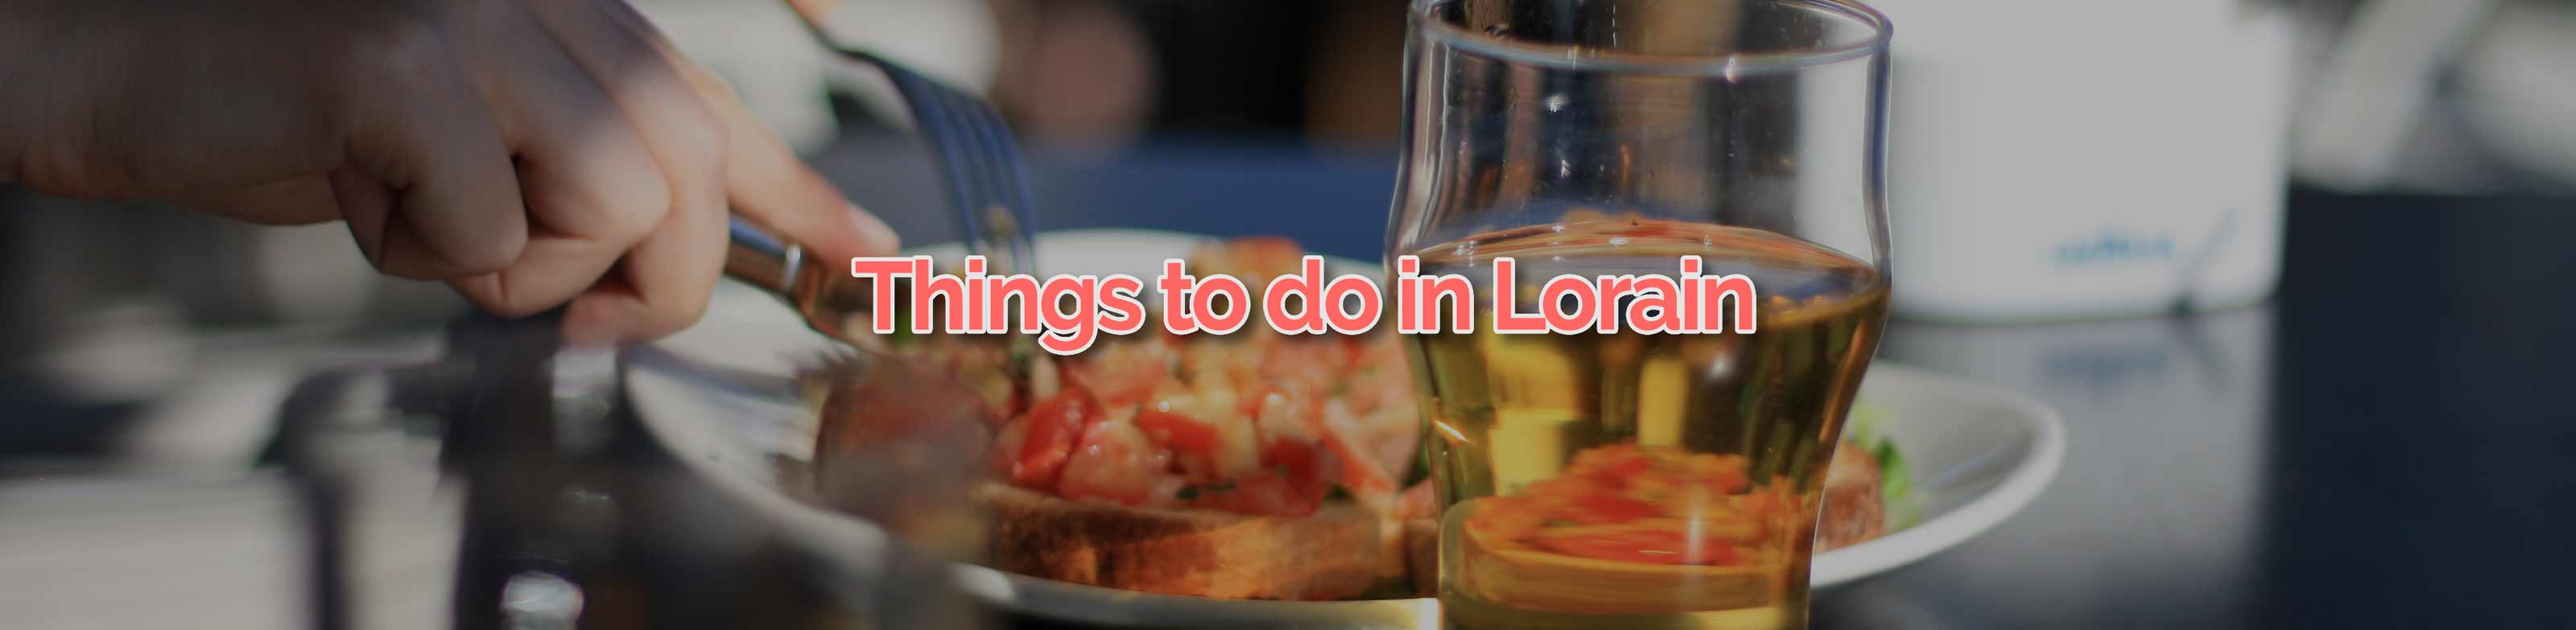 Things to do in Lorain